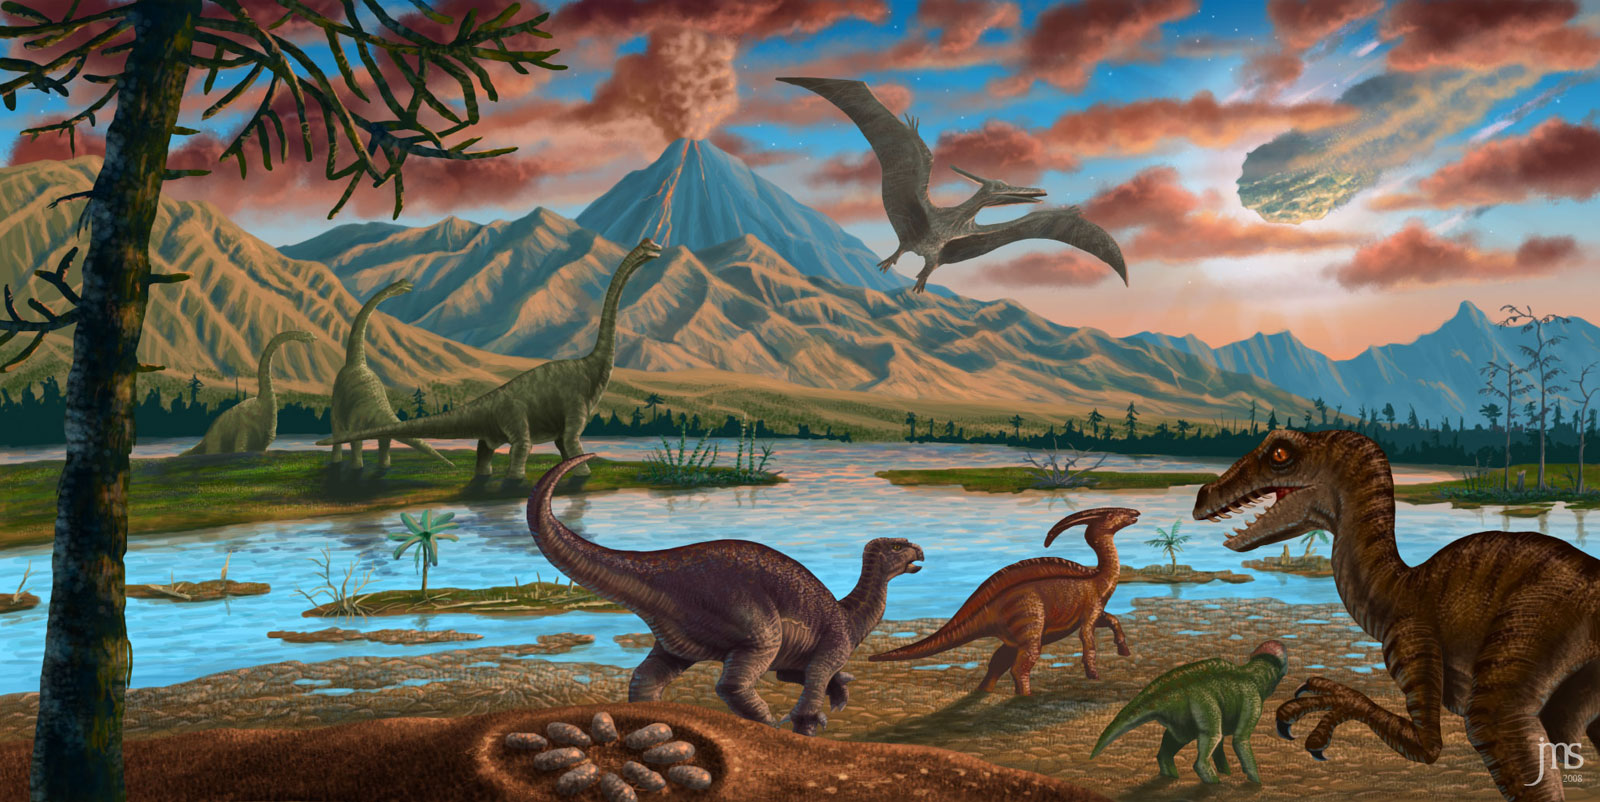 Dinosaurs By Donjapy2011 On DeviantArt